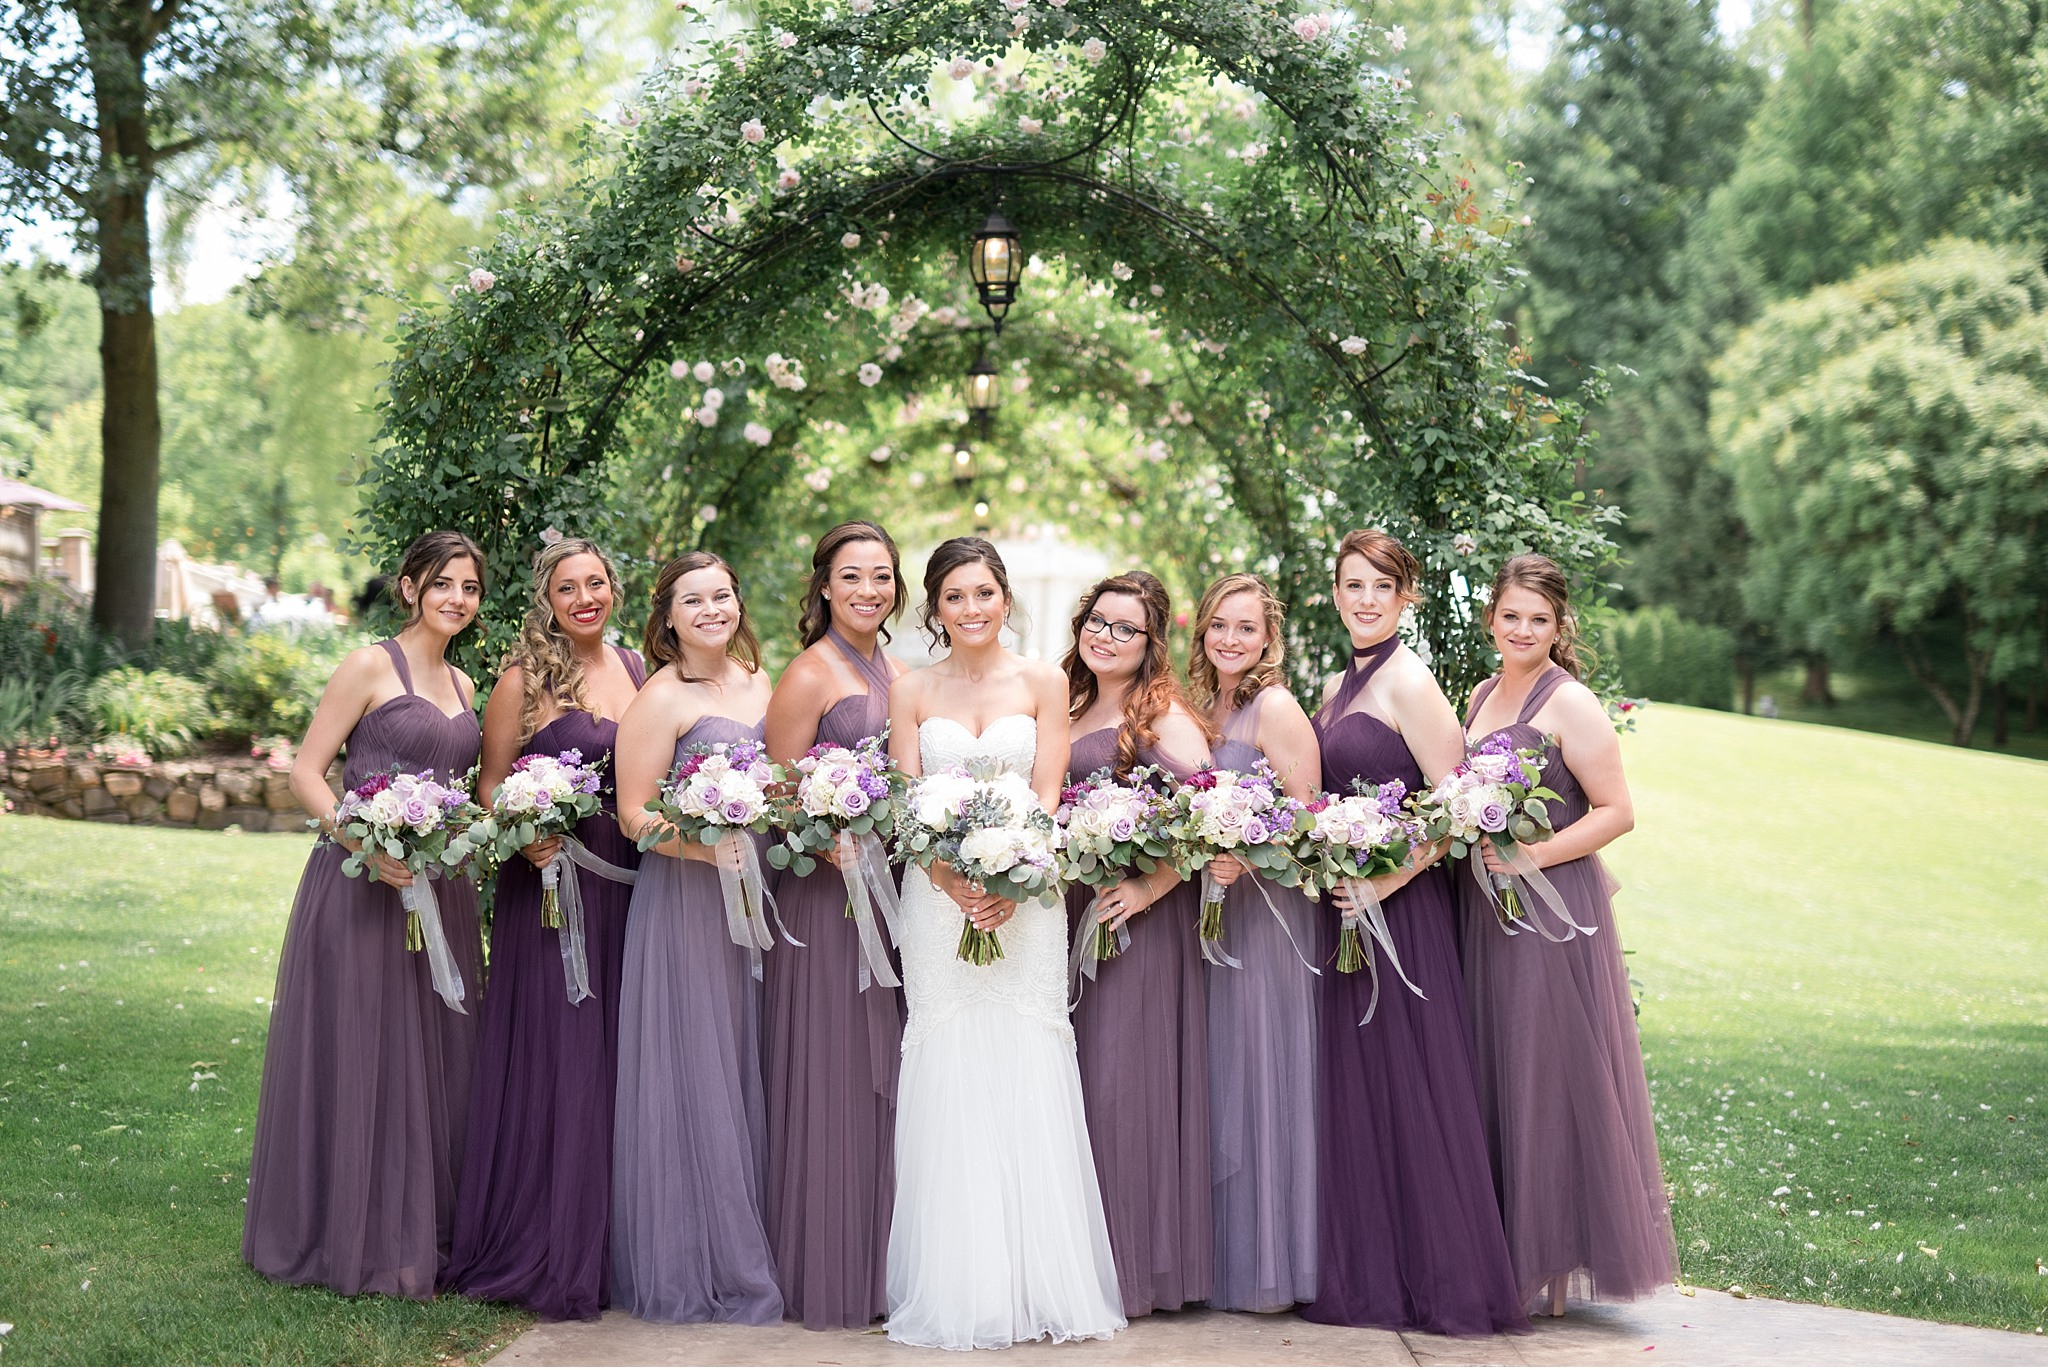 Bridesmaids and bride Moonstone Manor Elizabethtown PA purple and grey wedding photography photo_1692.jpg